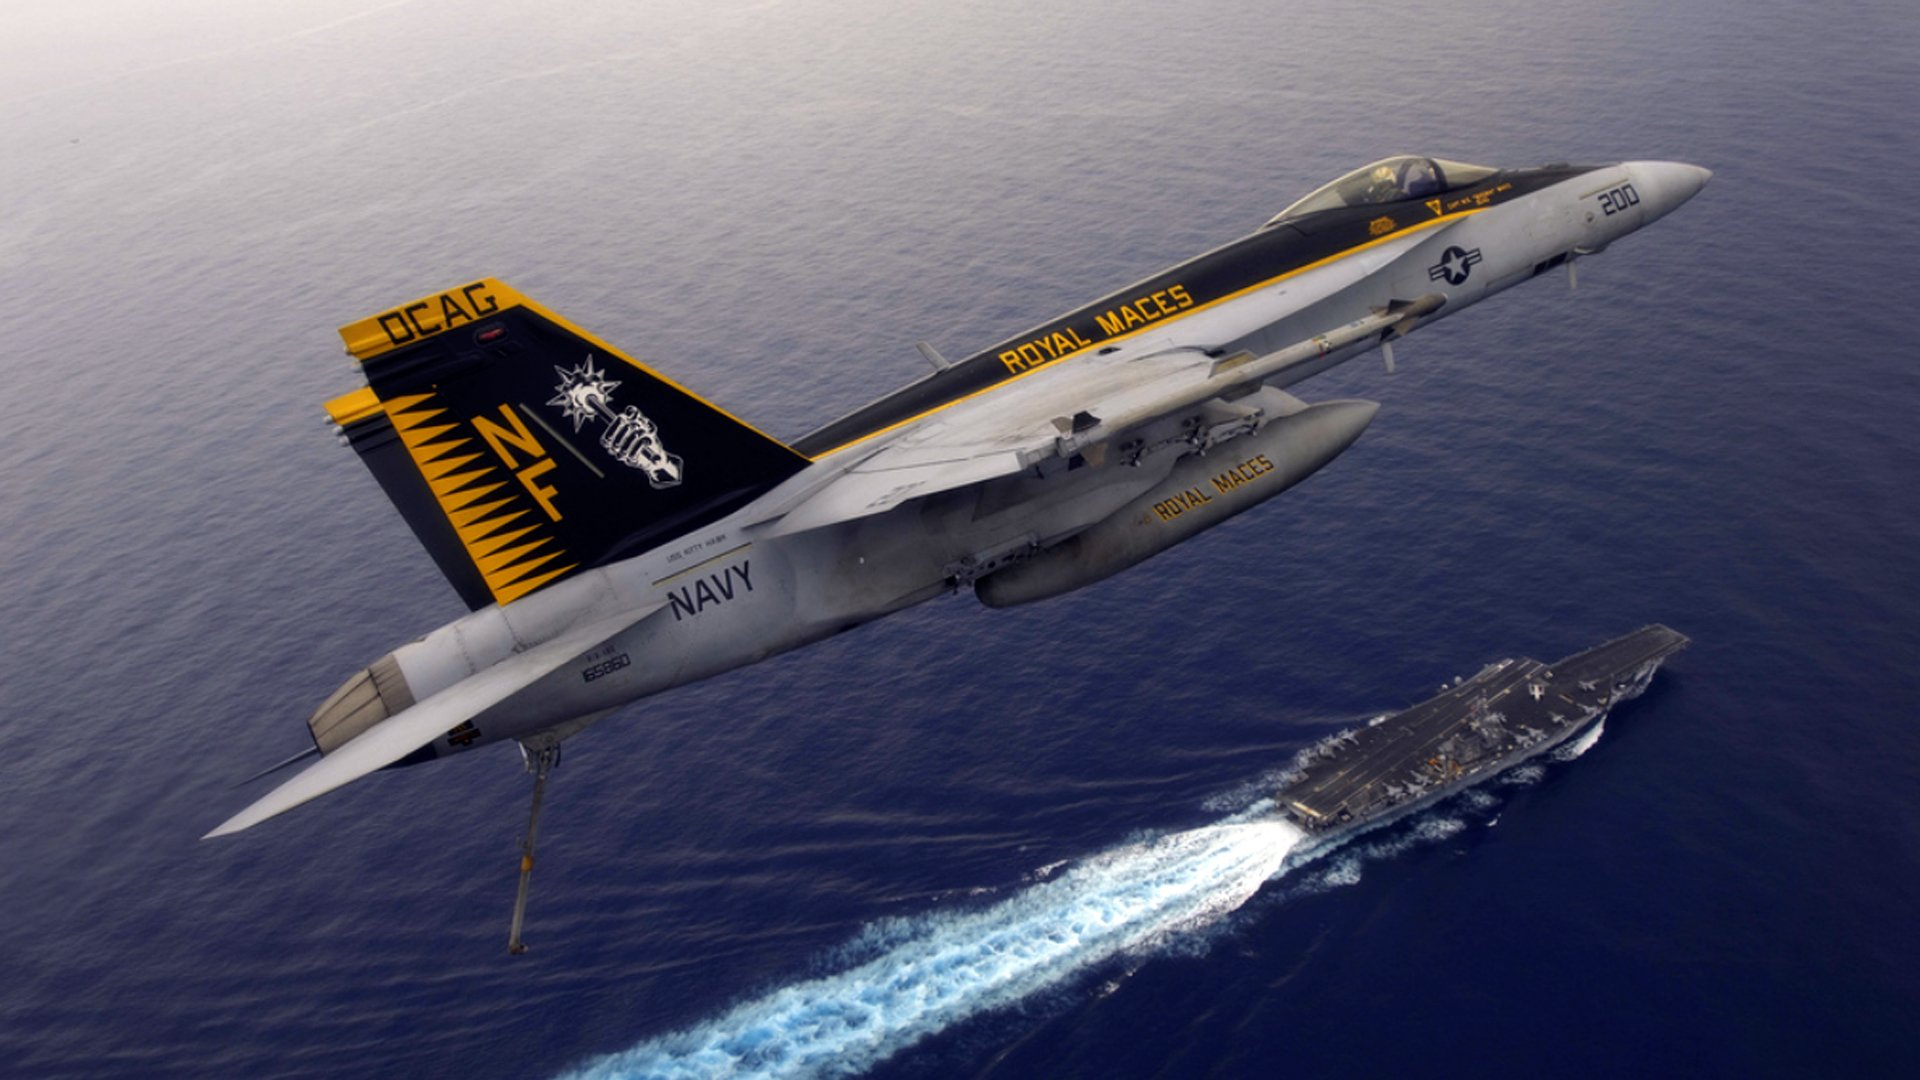 139 mcdonnell douglas f/a-18 hornet hd wallpapers | background